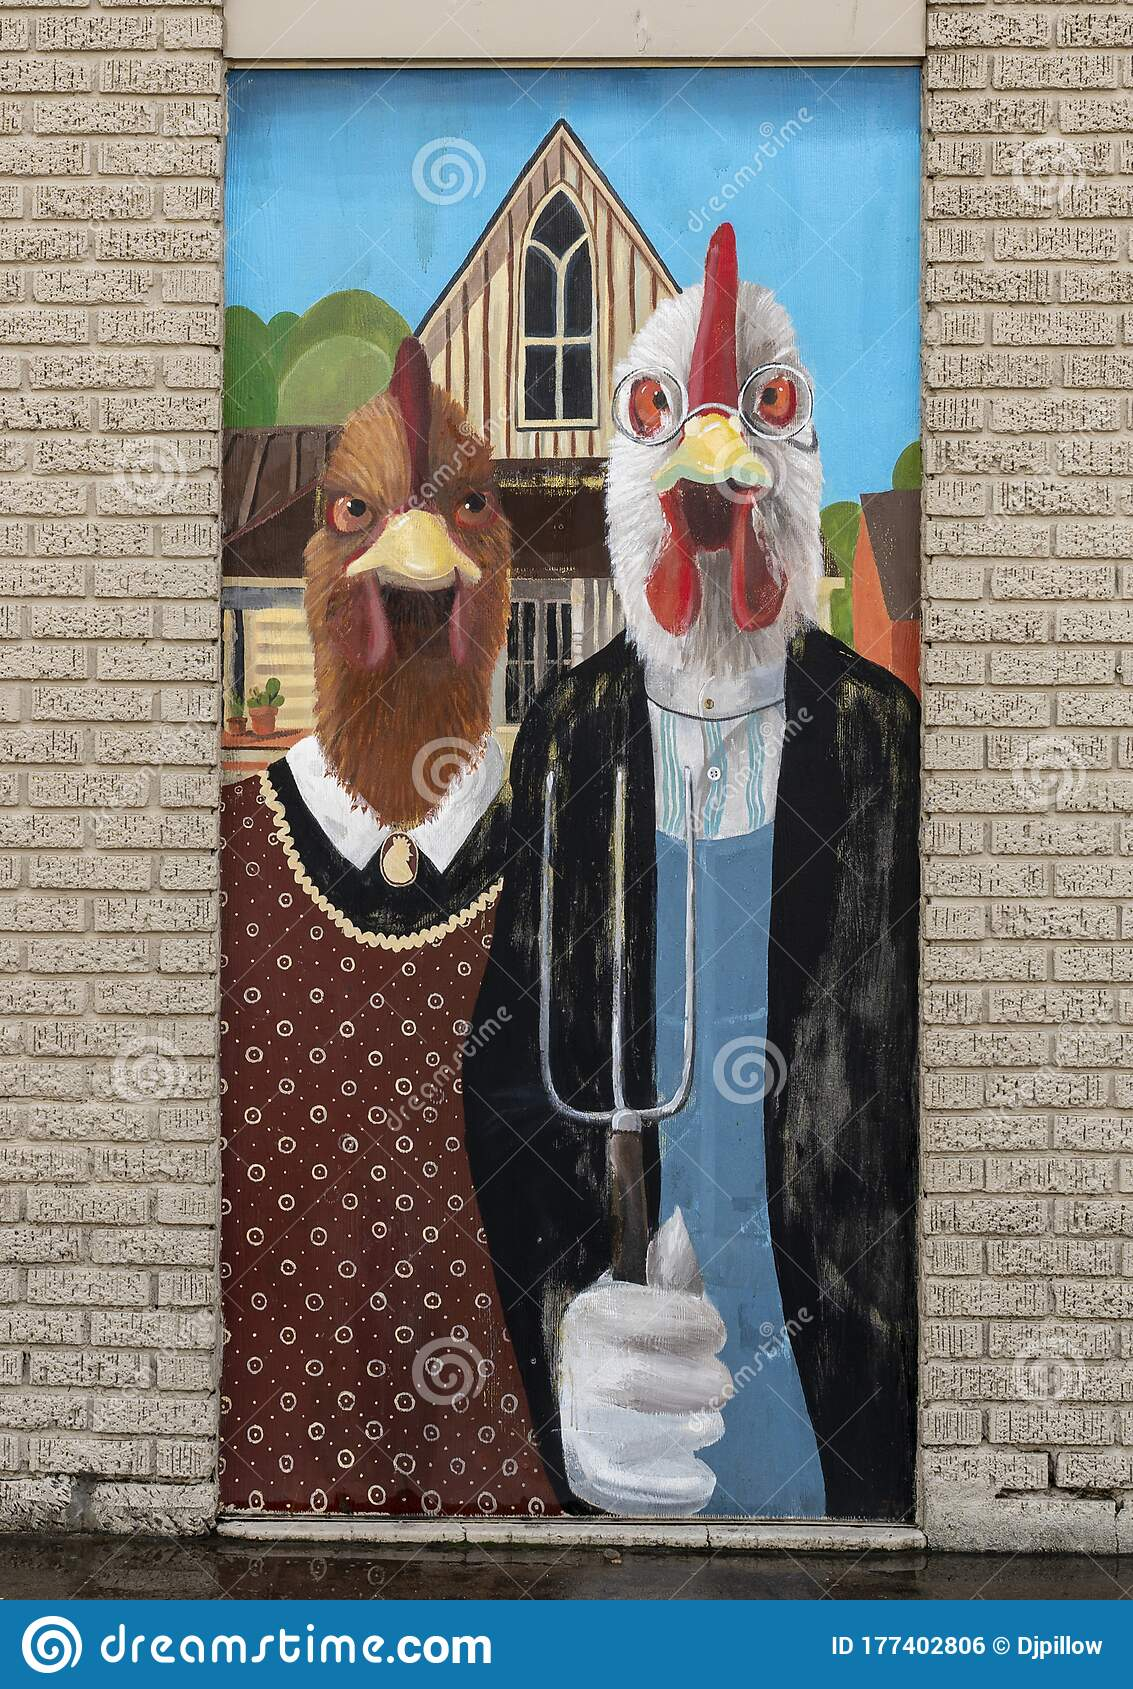 Farmer And His Wife Painting : farmer, painting, Chickens, Mimicking, Farmer, Famous, Painting,, American, Gothic, Grant, Wood., Stock, Photo, Image, Humans,, Painting:, 177402806